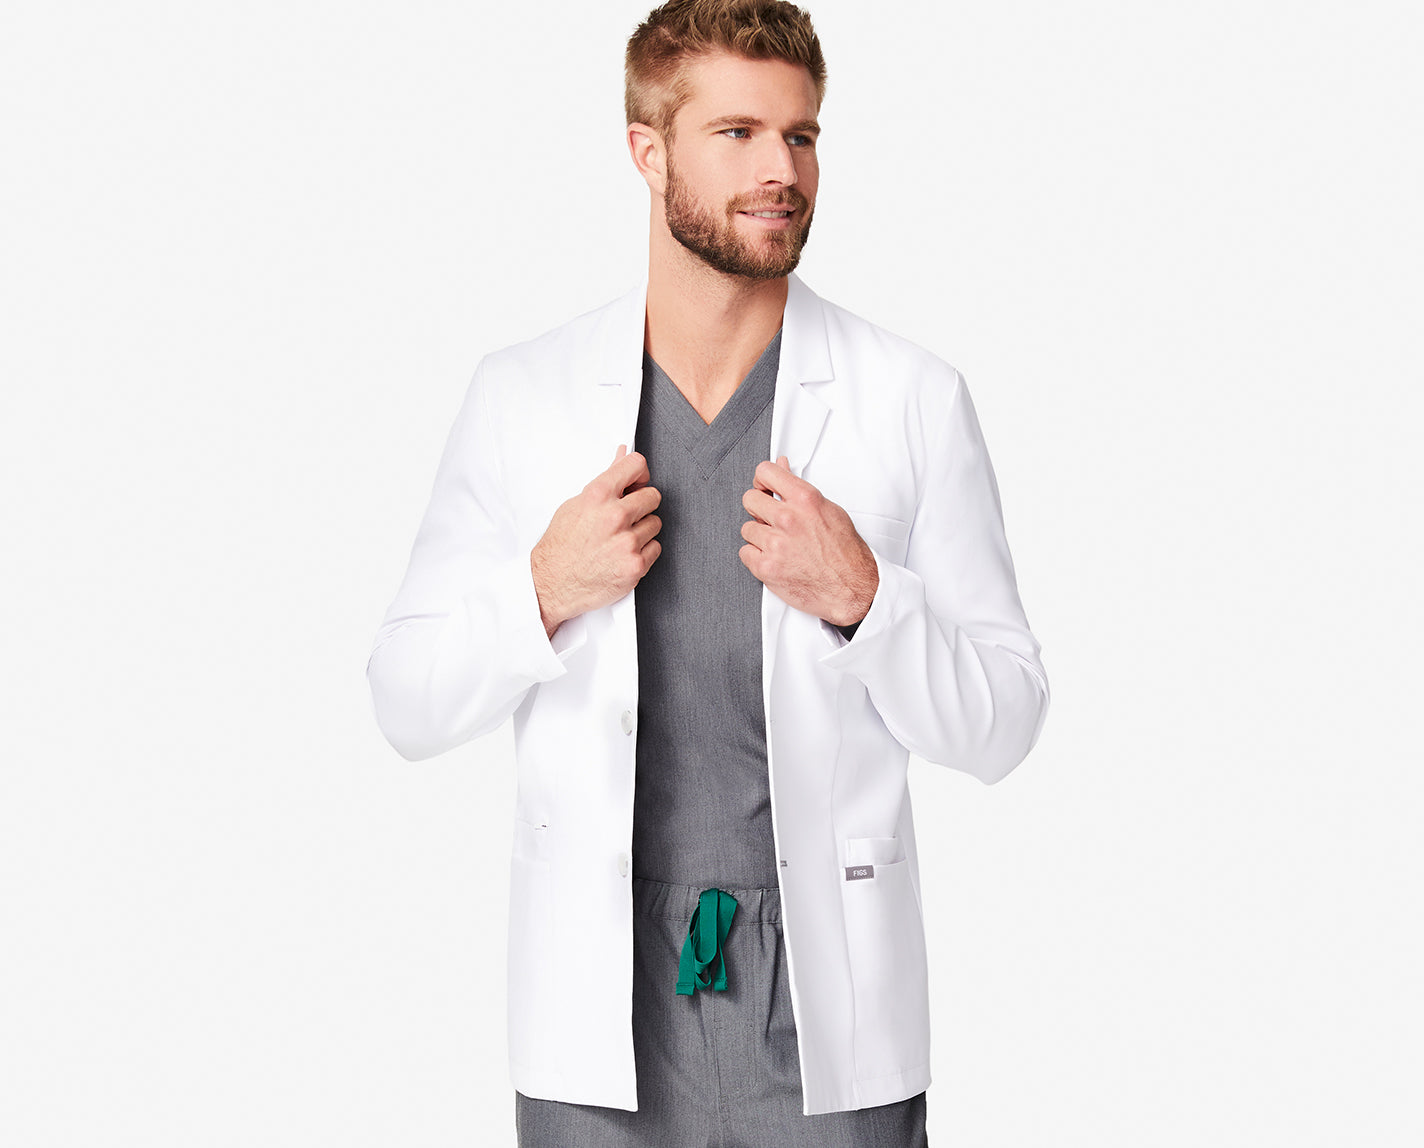 Meet your new lab coat. A classic fit, featuring modern fabric tech – the Harlem is our lightest lab coat ever constructed and is liquid repellent, anti-static, naturally anti-wrinkle and is constructed with anti-sheer yarn.